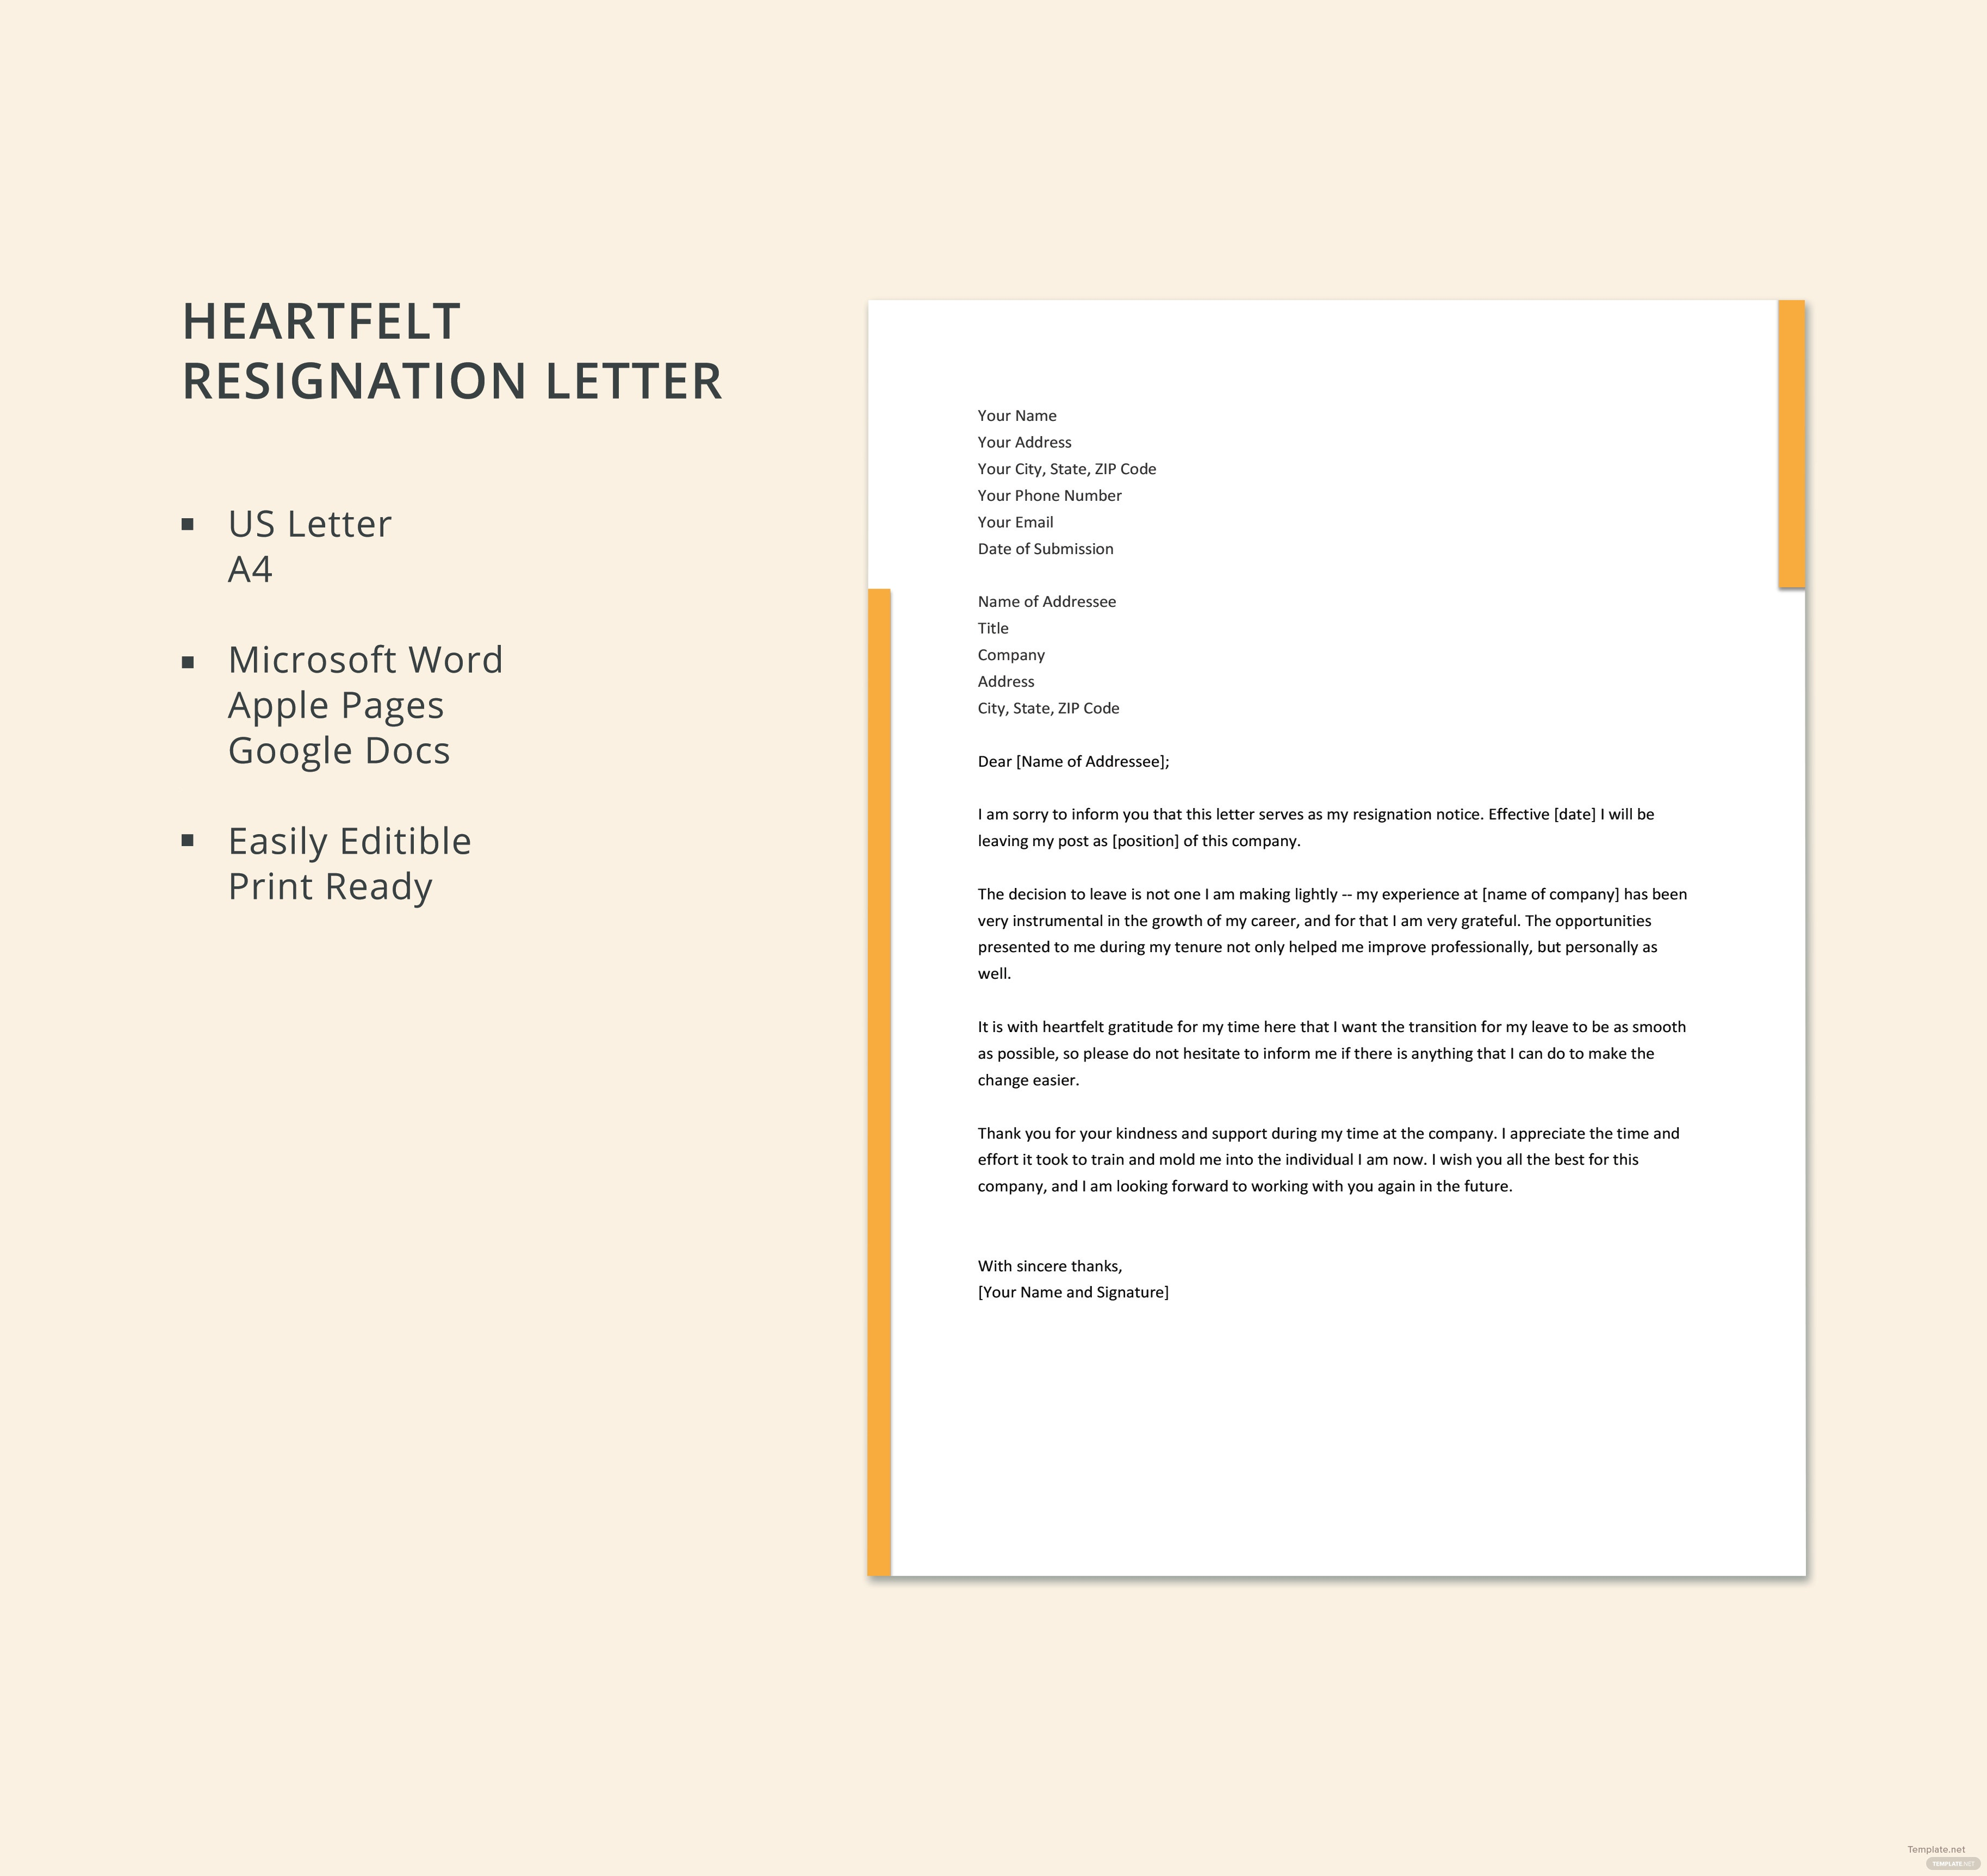 Free heartfelt resignation letter template in microsoft word apple free heartfelt resignation letter template spiritdancerdesigns Gallery